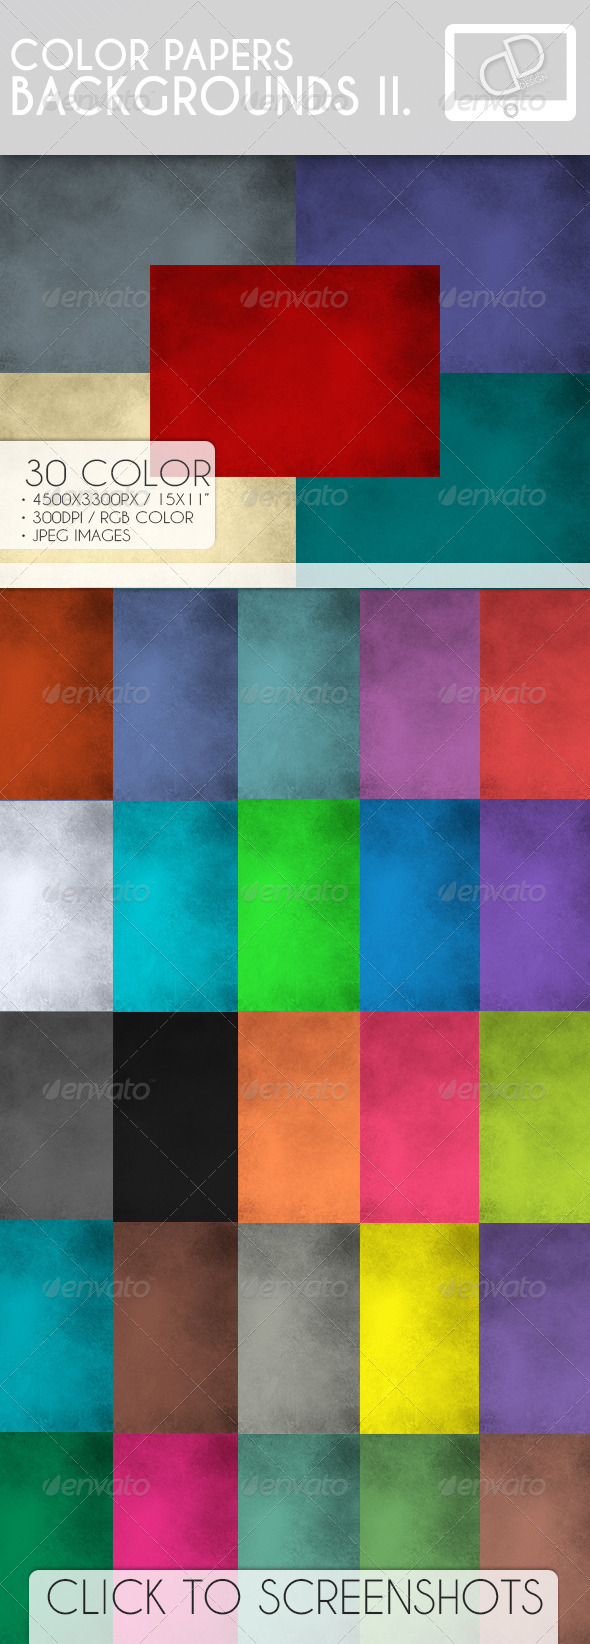 Color Paper Backgrounds II - Backgrounds Graphics